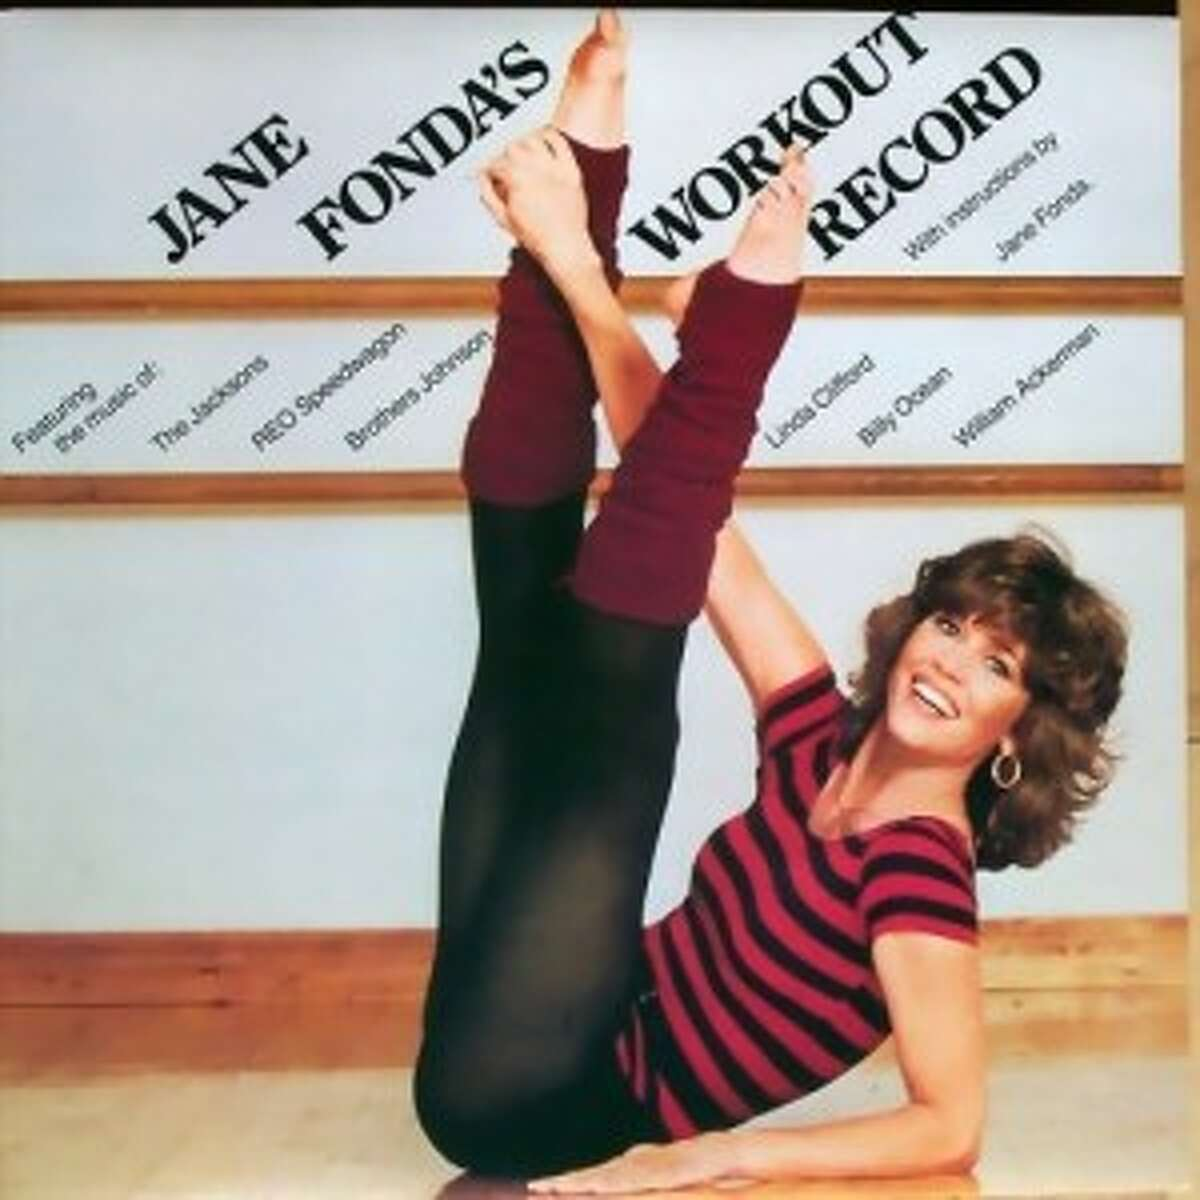 Perhaps the most famous of these recently have been Jane Fonda's Tik Tok workout videos that have rekindling 80's nostalgia. Aside from this trip down memory lane, many gyms and studios are offering video lessons for those looking to get their exercise in at home.